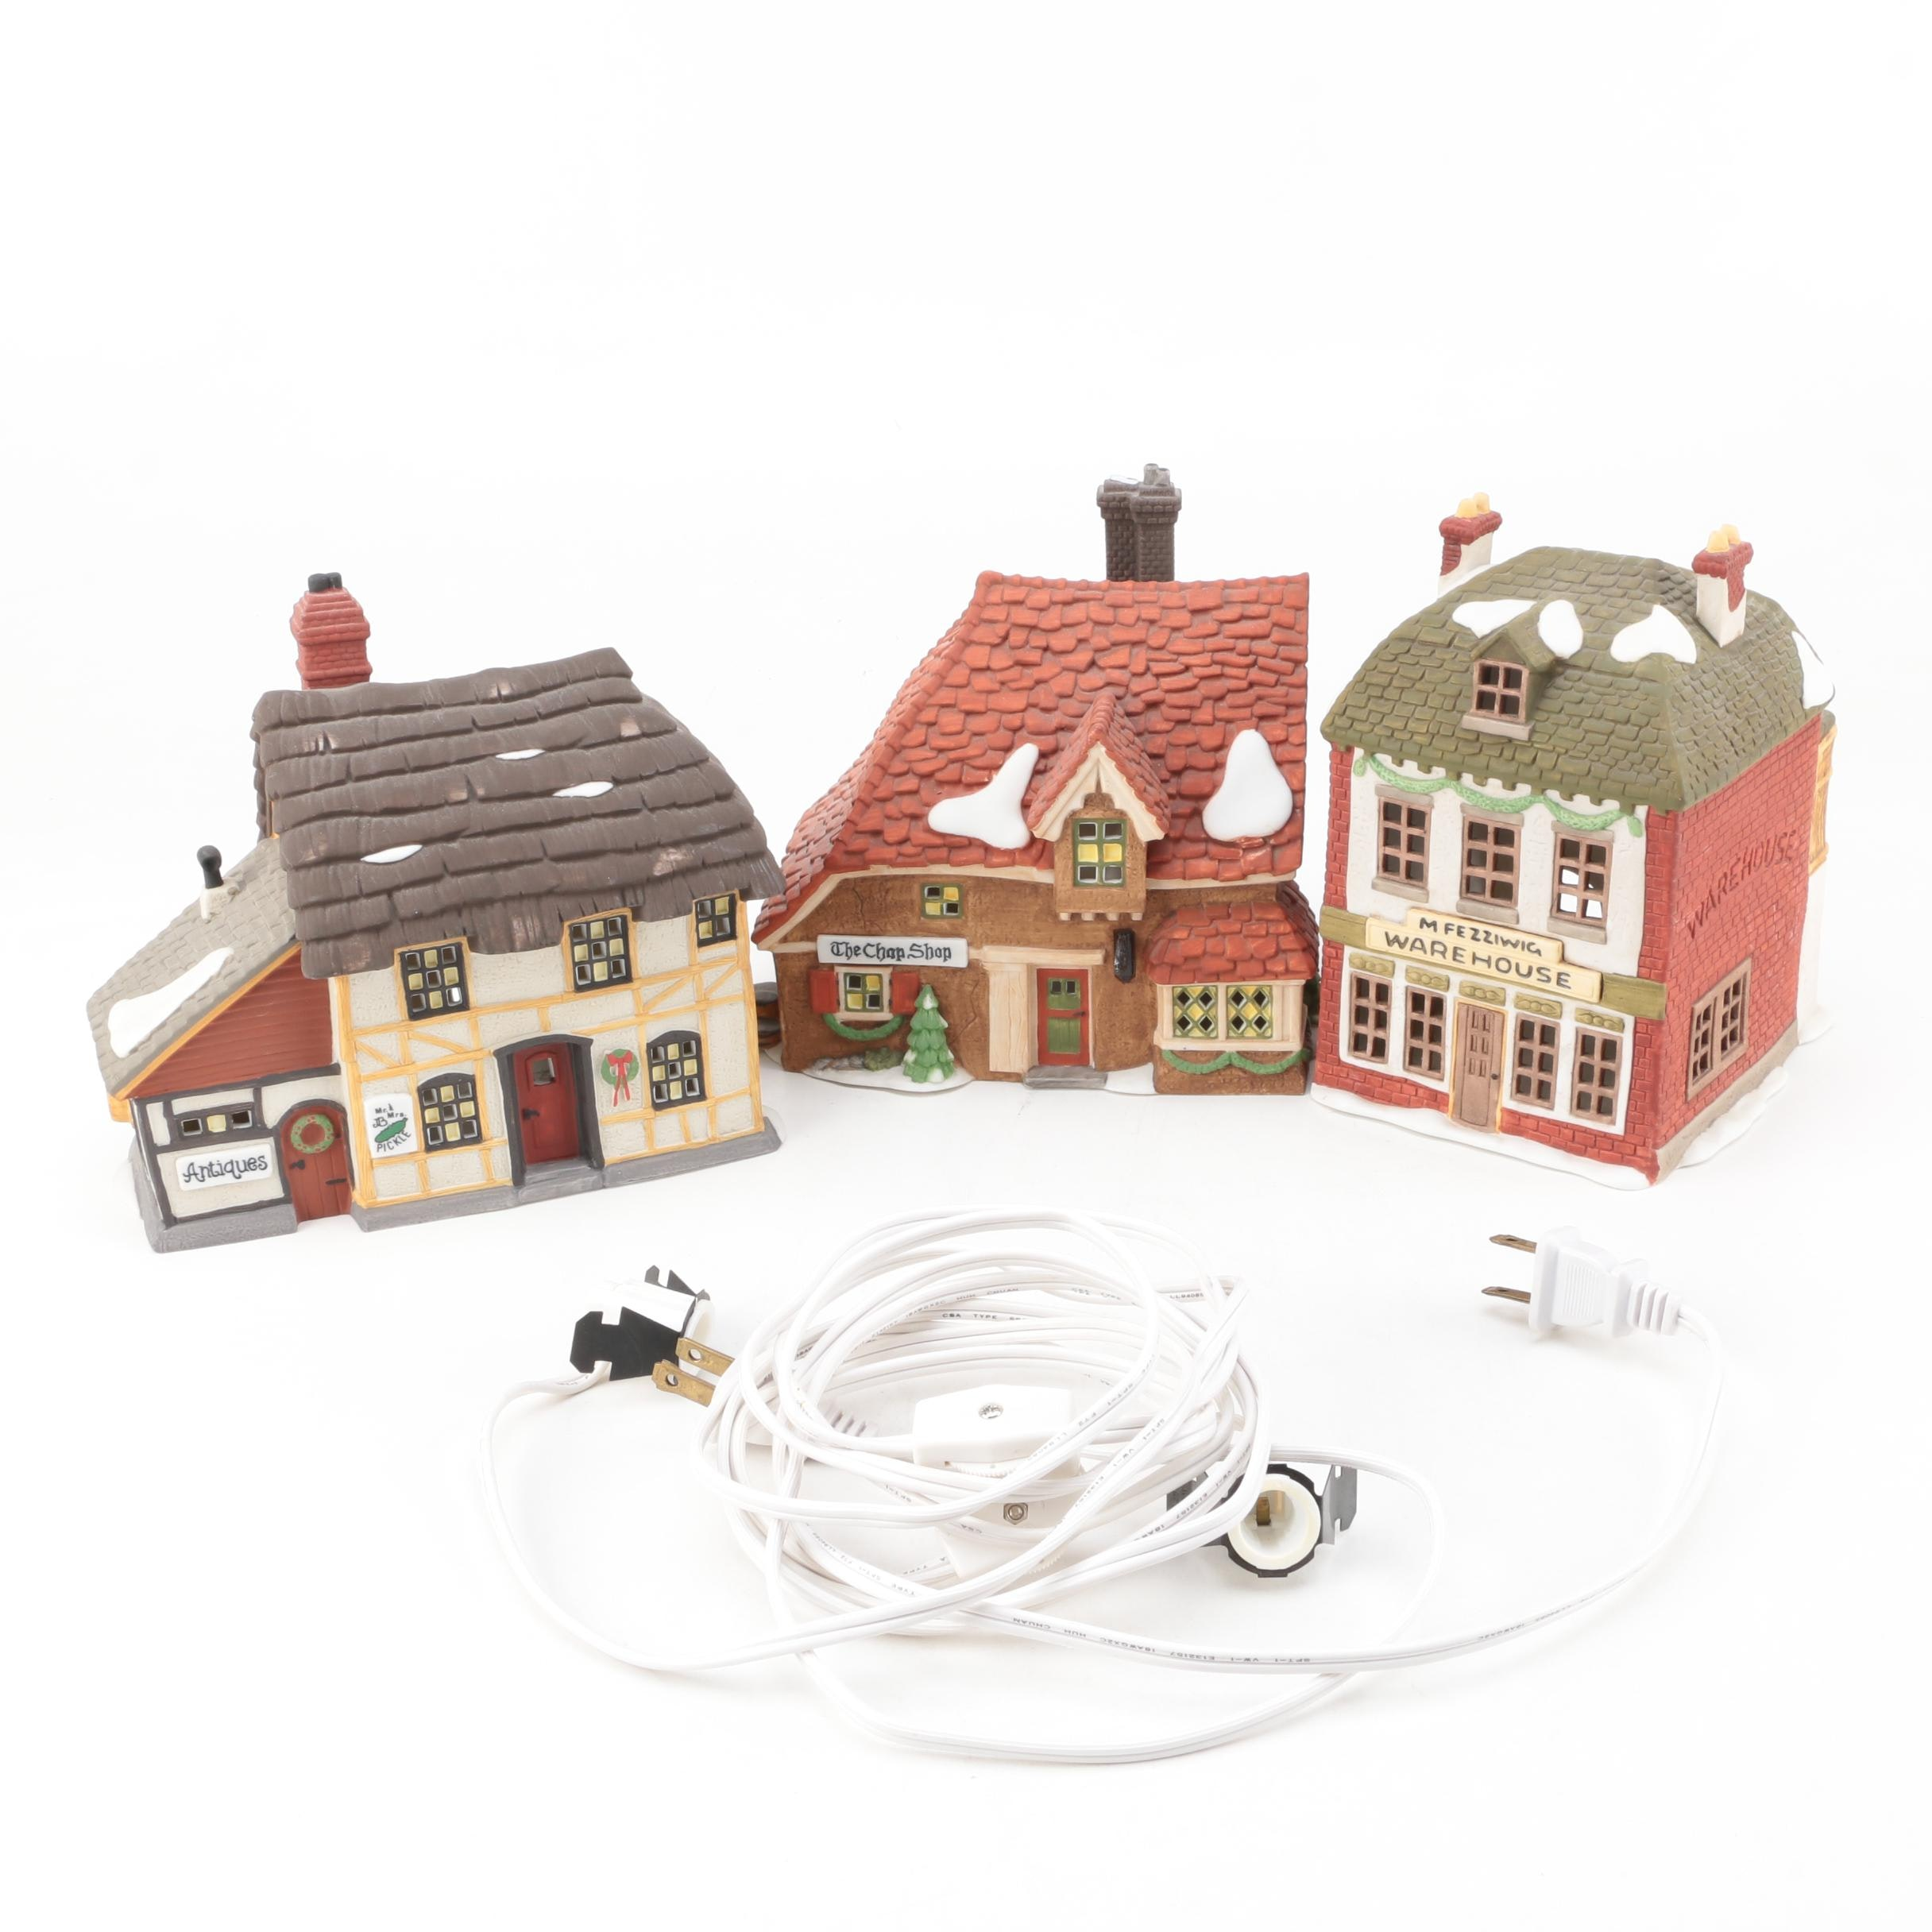 Department 56 Ceramic Dickens Village Houses and Light Cords